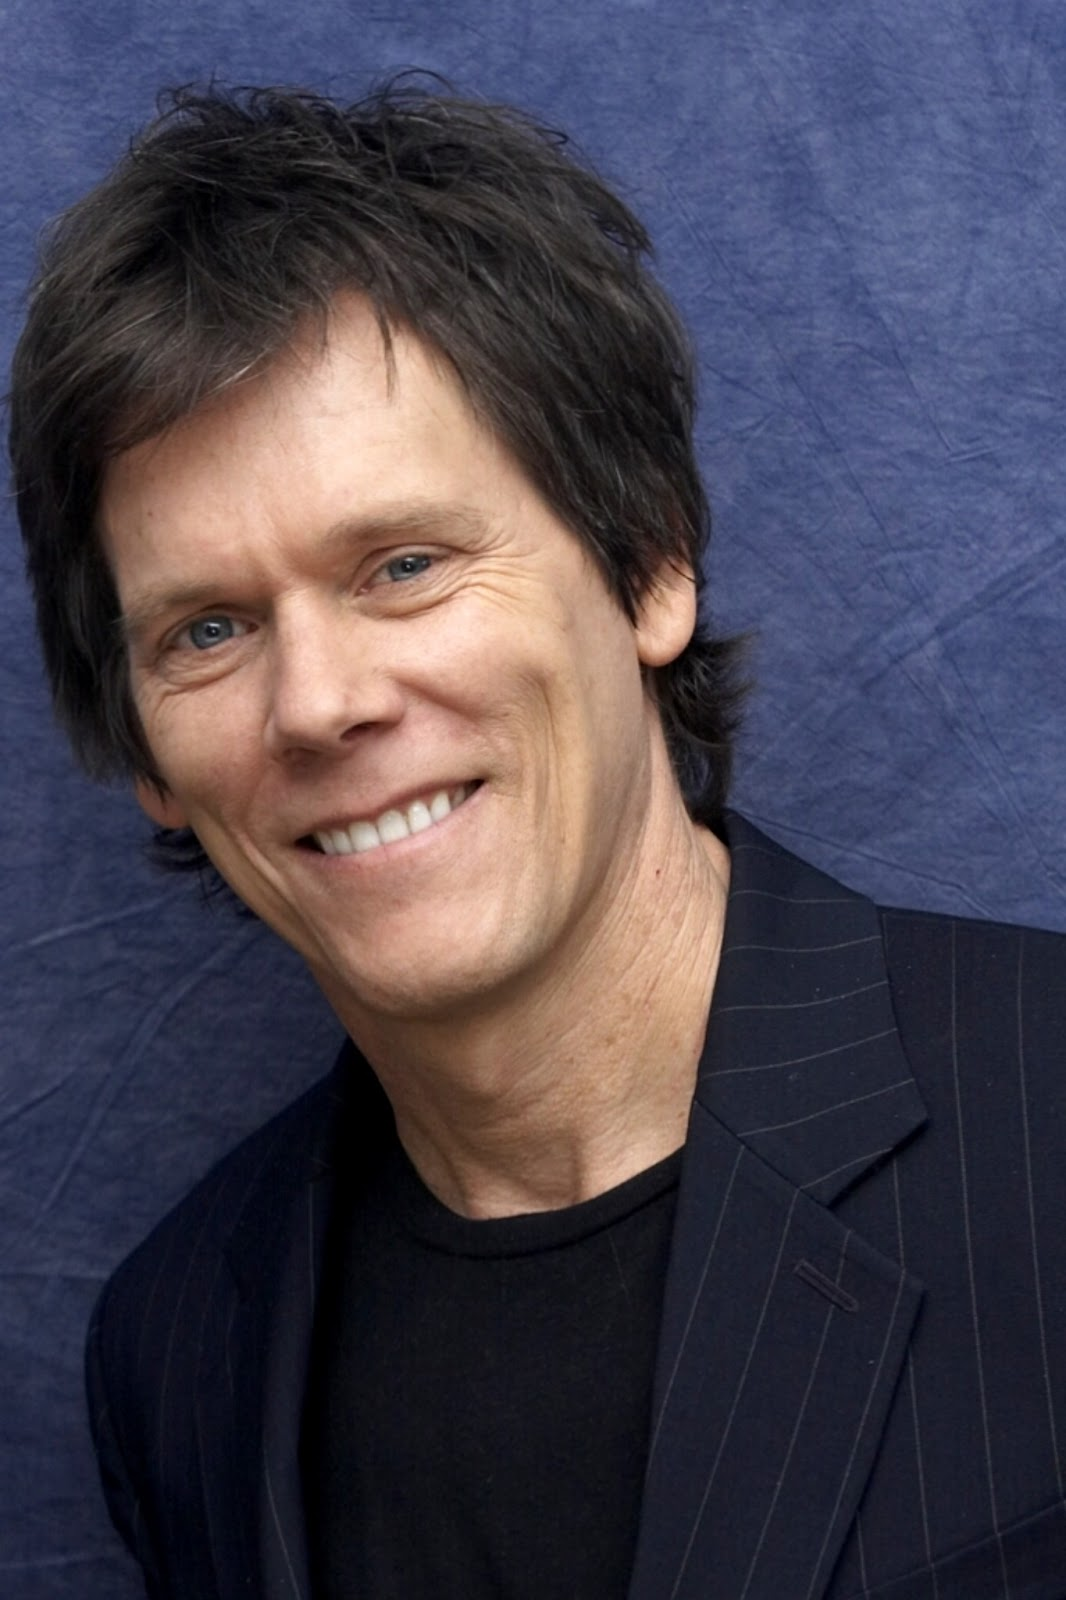 Cute Ryan Wallpaper Kevin Bacon Photos Tv Series Posters And Cast